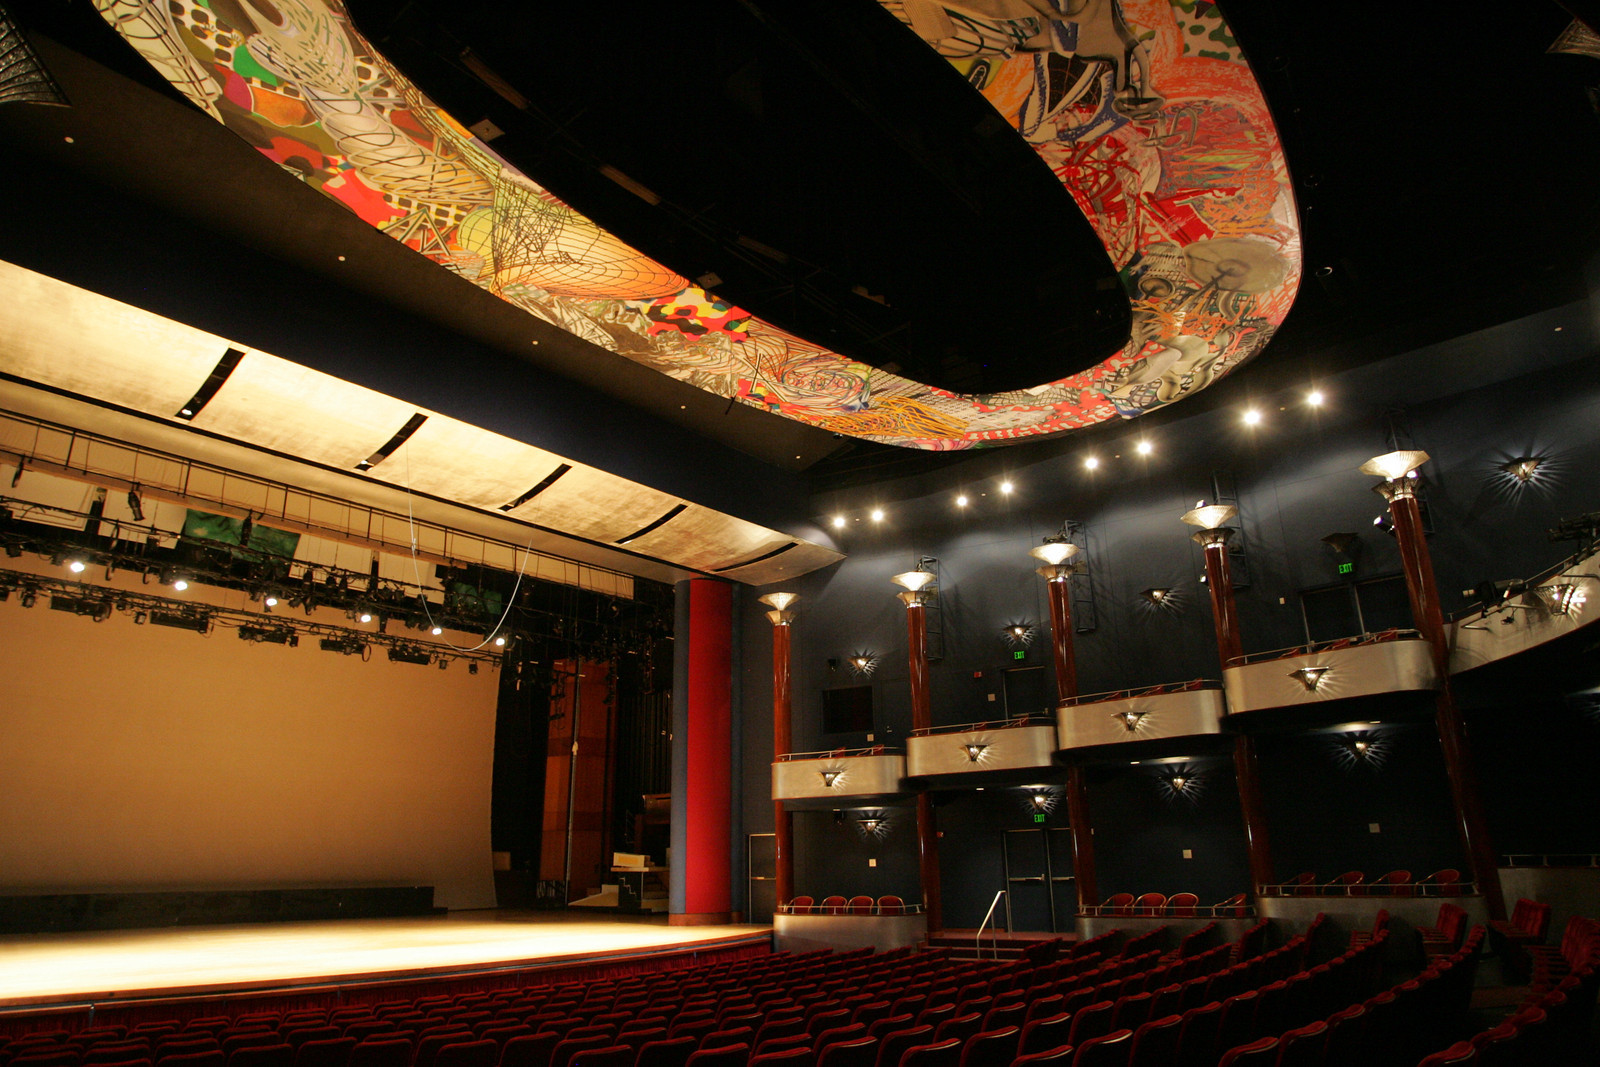 Inside the Moores Opera House